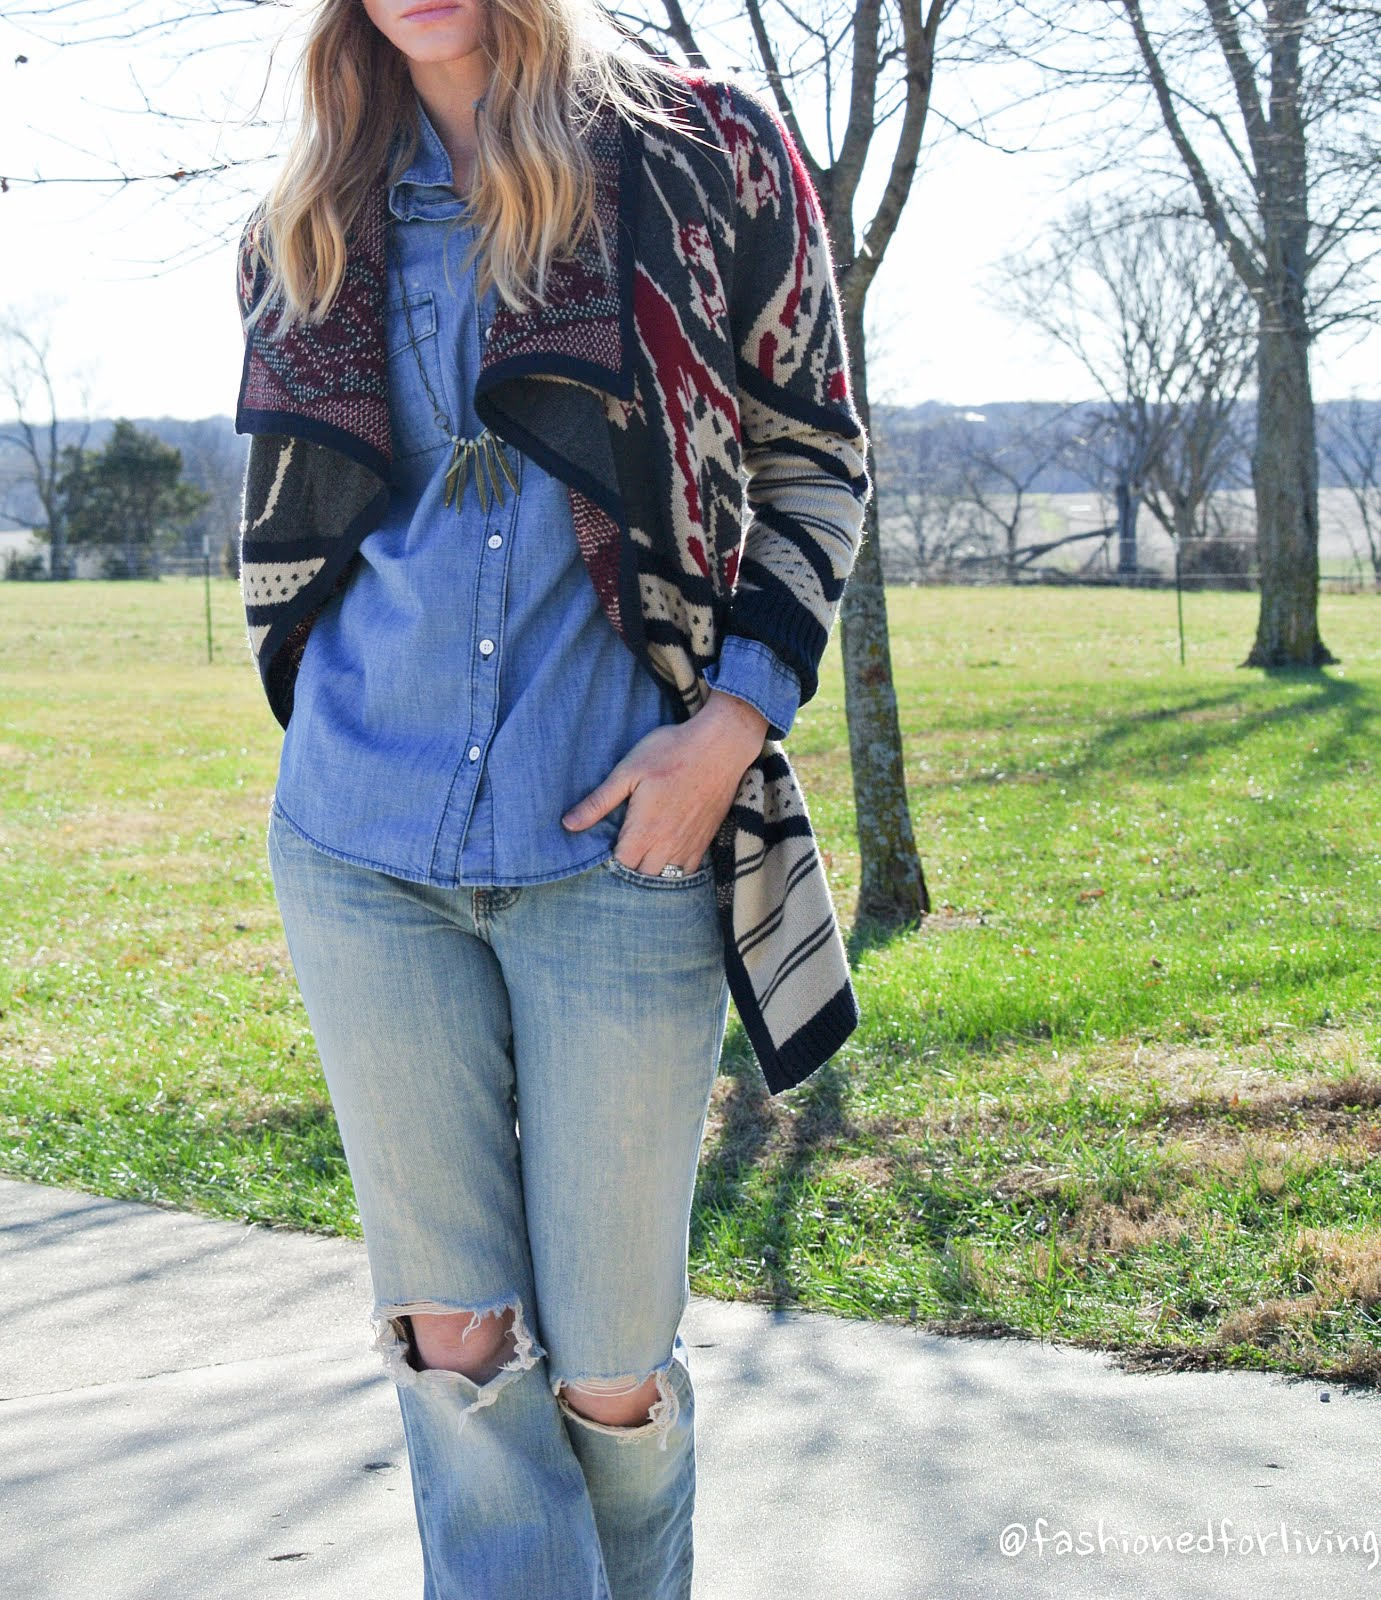 Ripped Flare Jeans, Fair Isle Aztec Cardigan, Denim Chambray Shirt, Pom Hat  and Cowboy Boots - Denim on Denim - Fashioned For Living: Ripped Flare Jeans, Fair Isle Aztec Cardigan